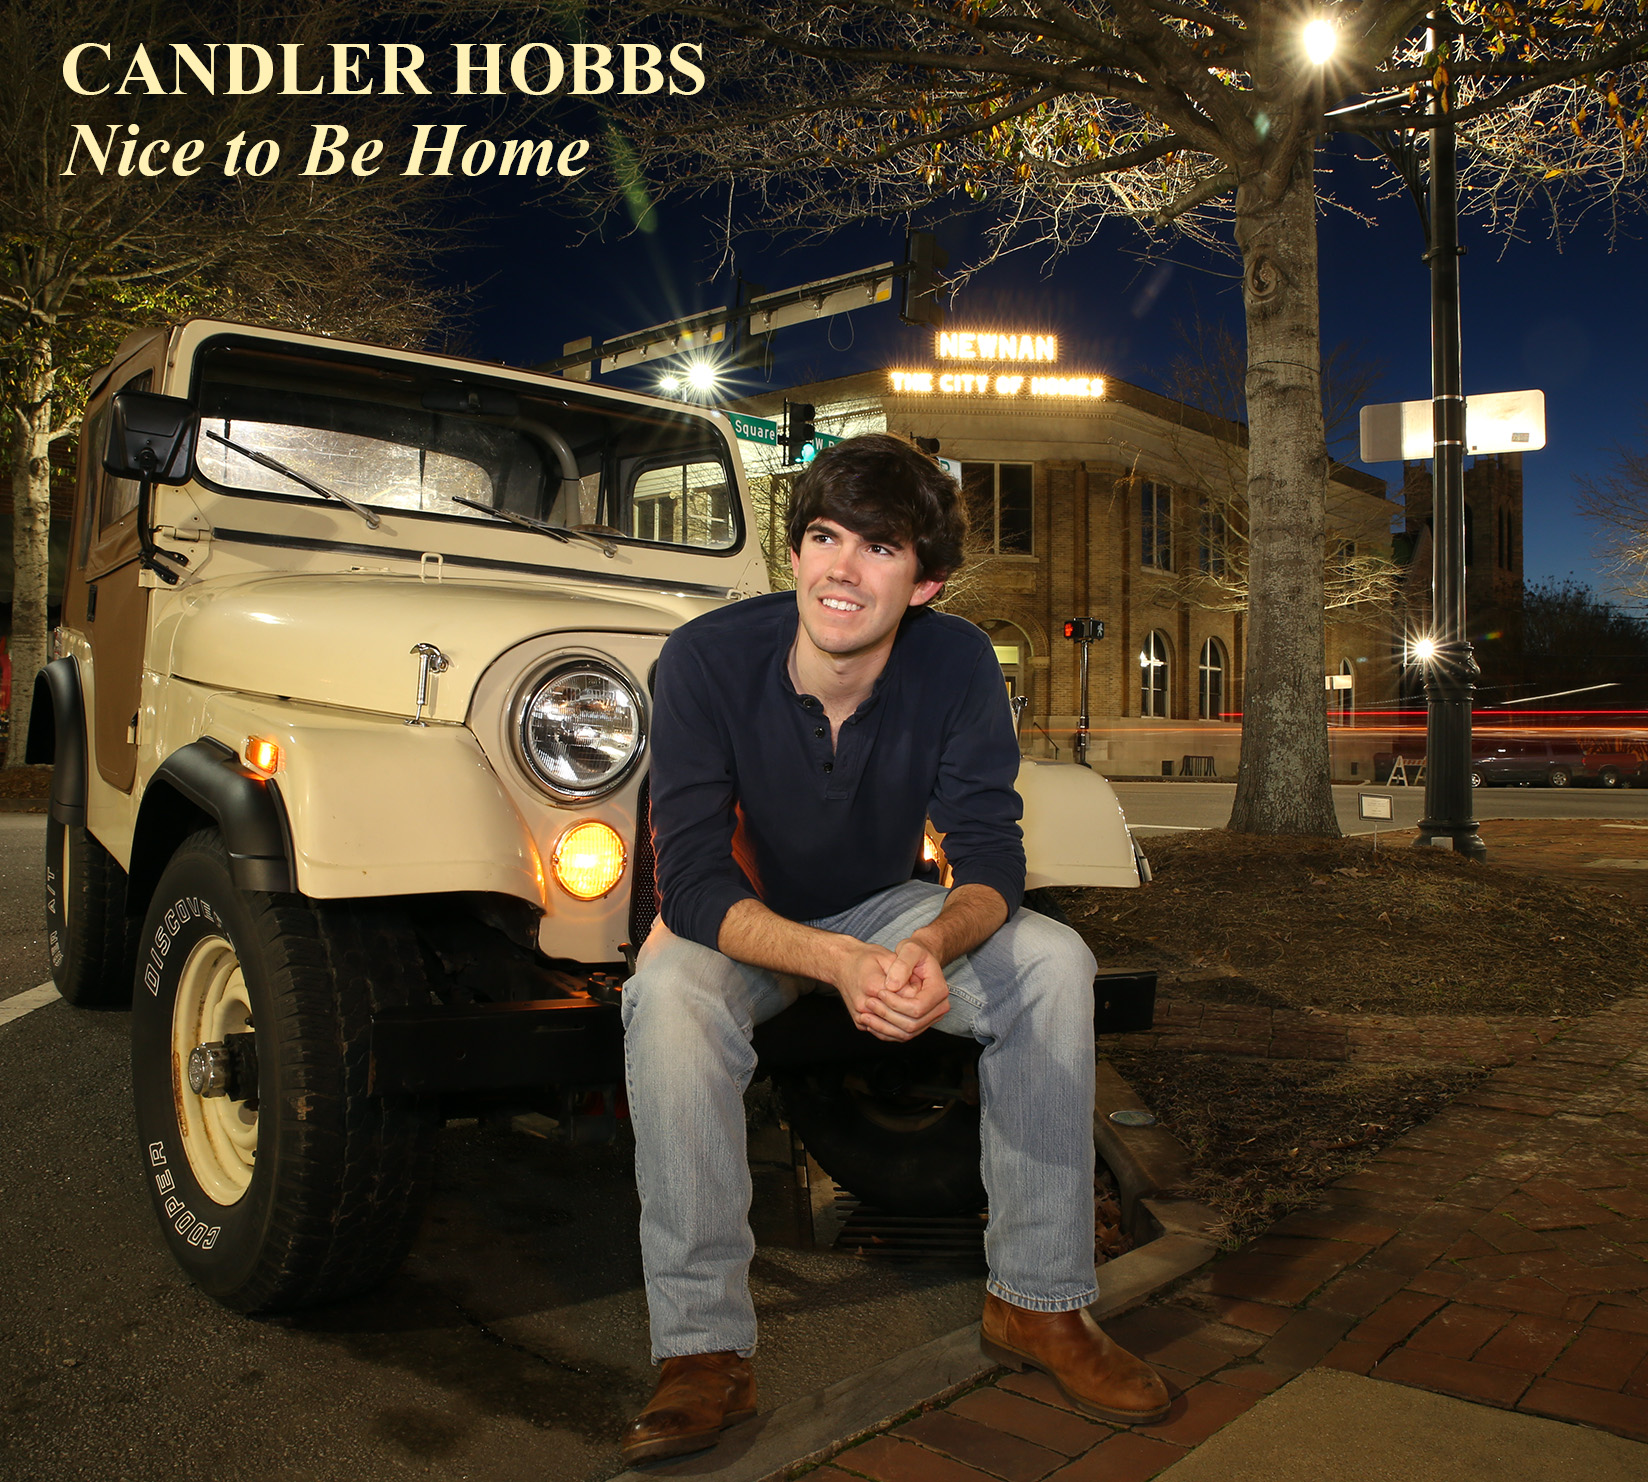 Candler Hobbs – Nice to Be Home (2015)